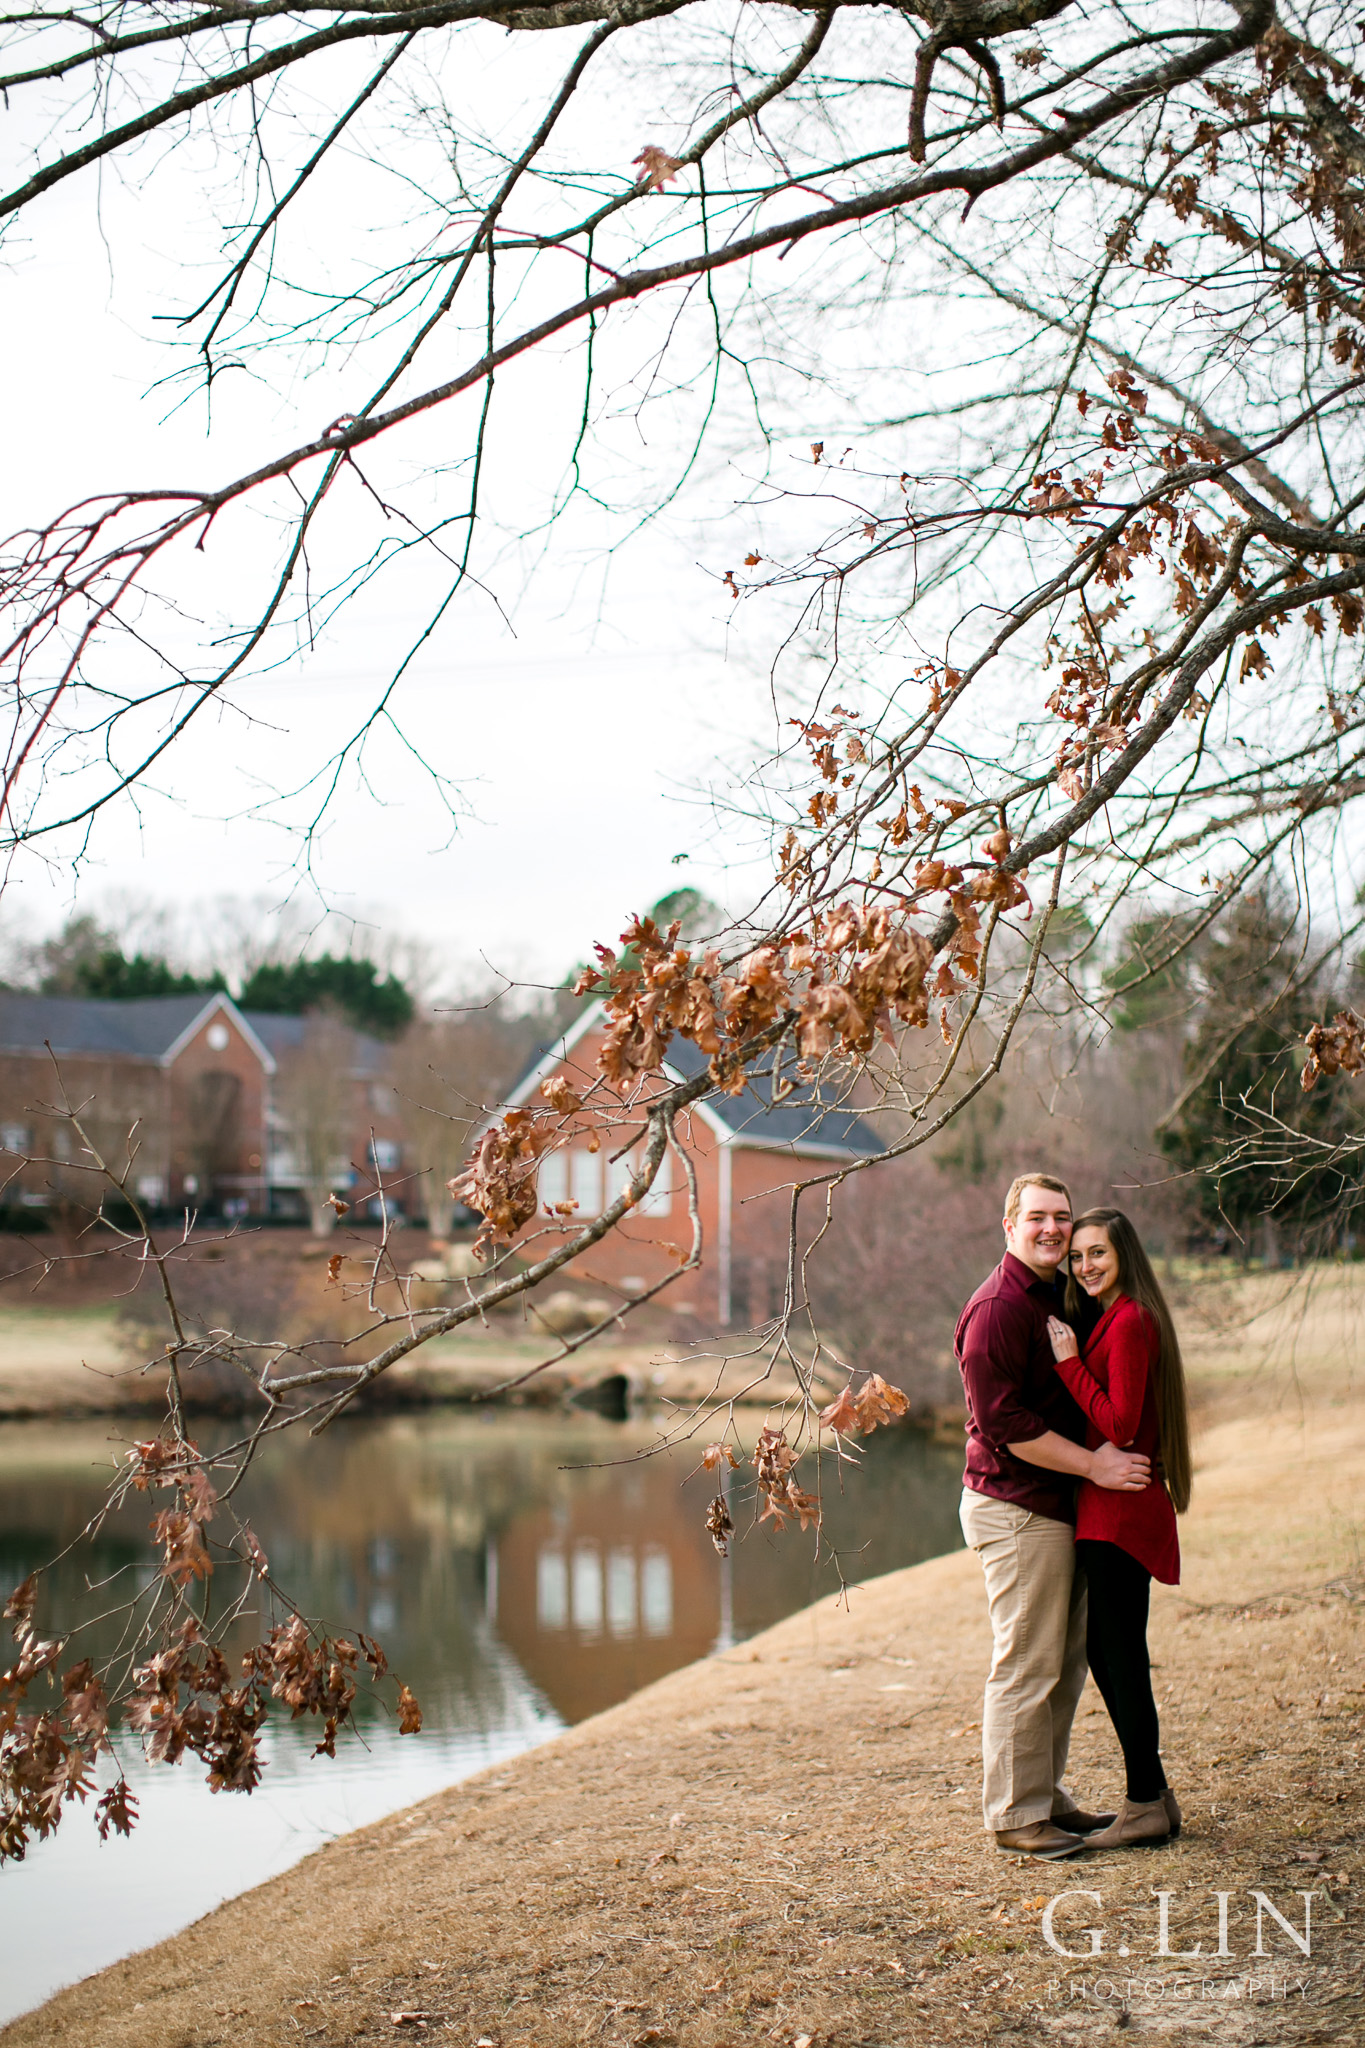 Winter Engagement Photo | Raleigh Engagement Photographer | By G. Lin Photography